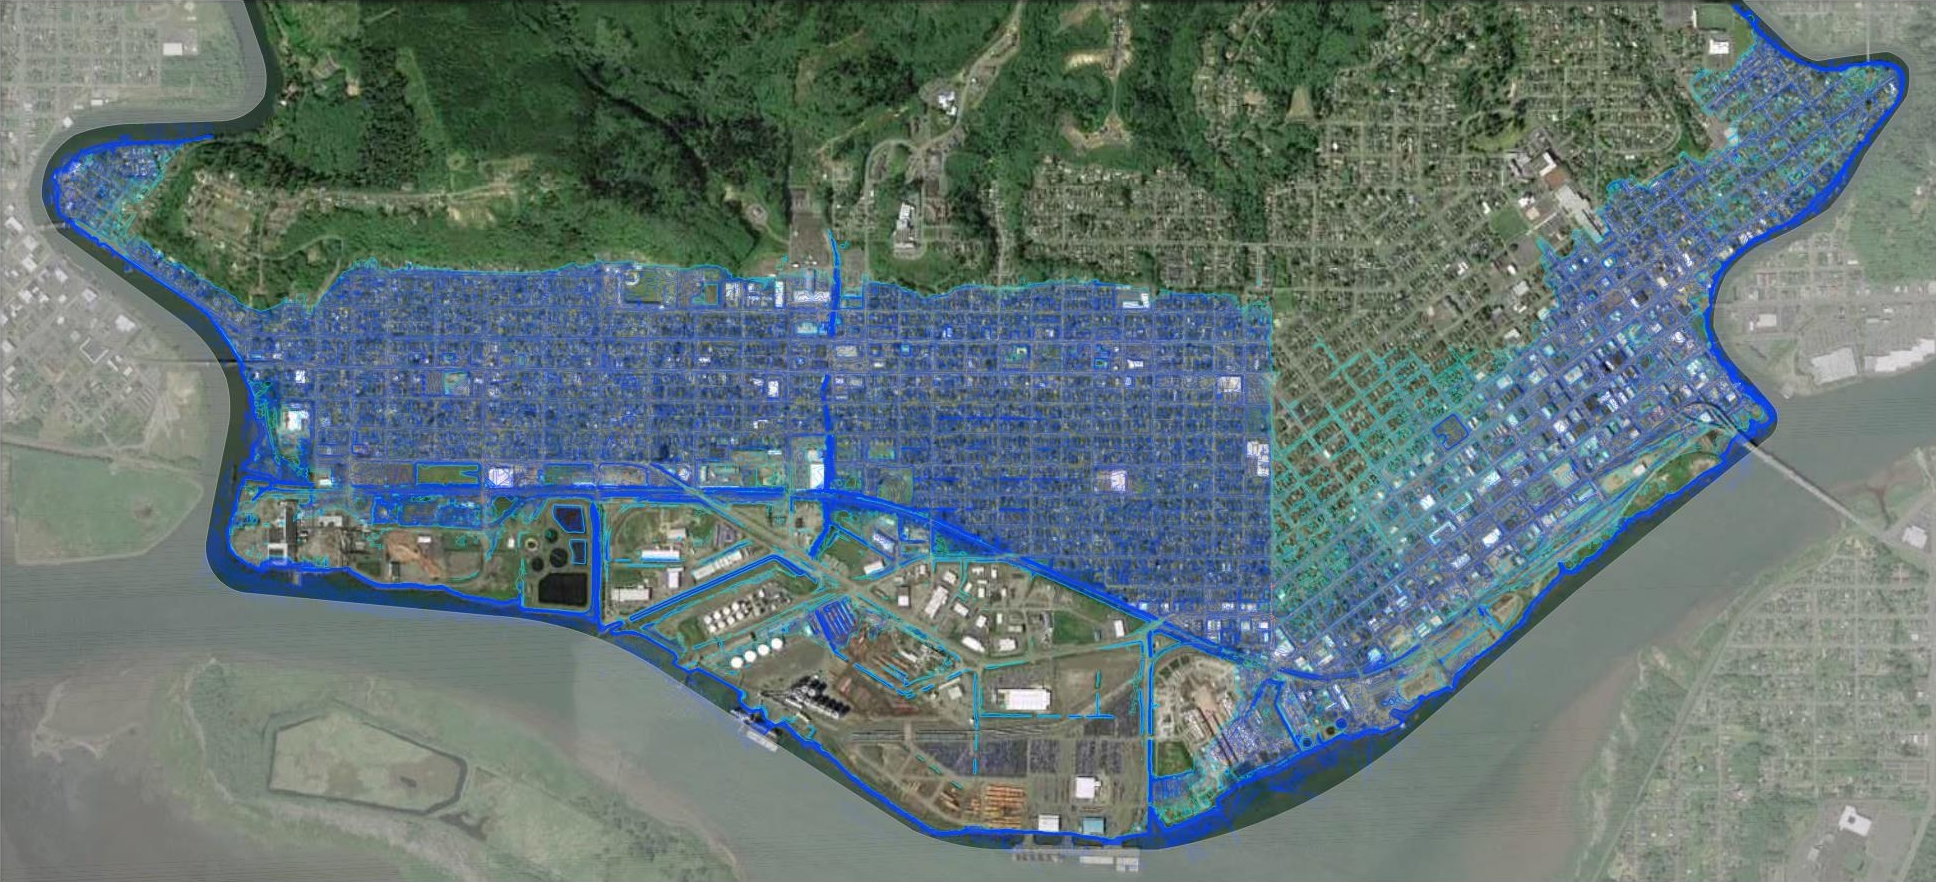 Flood-prone areas within the scope of the new North Shore Levee